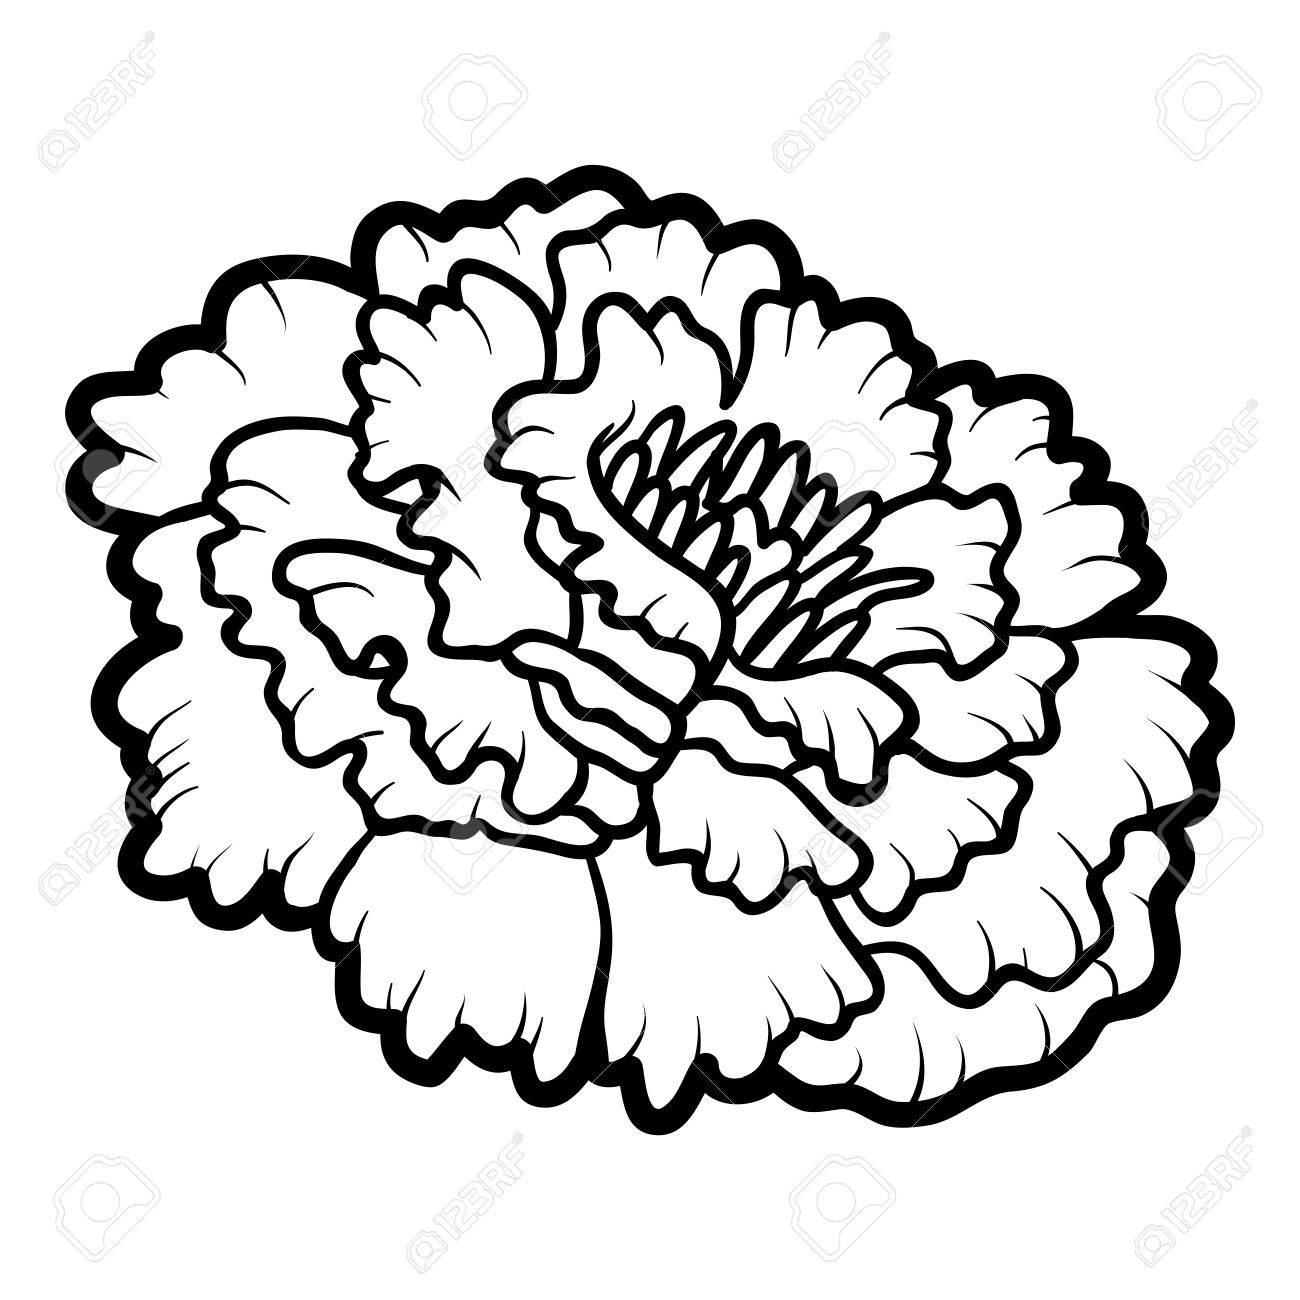 Coloring Book For Children, Flower Marigold Royalty Free Cliparts ...